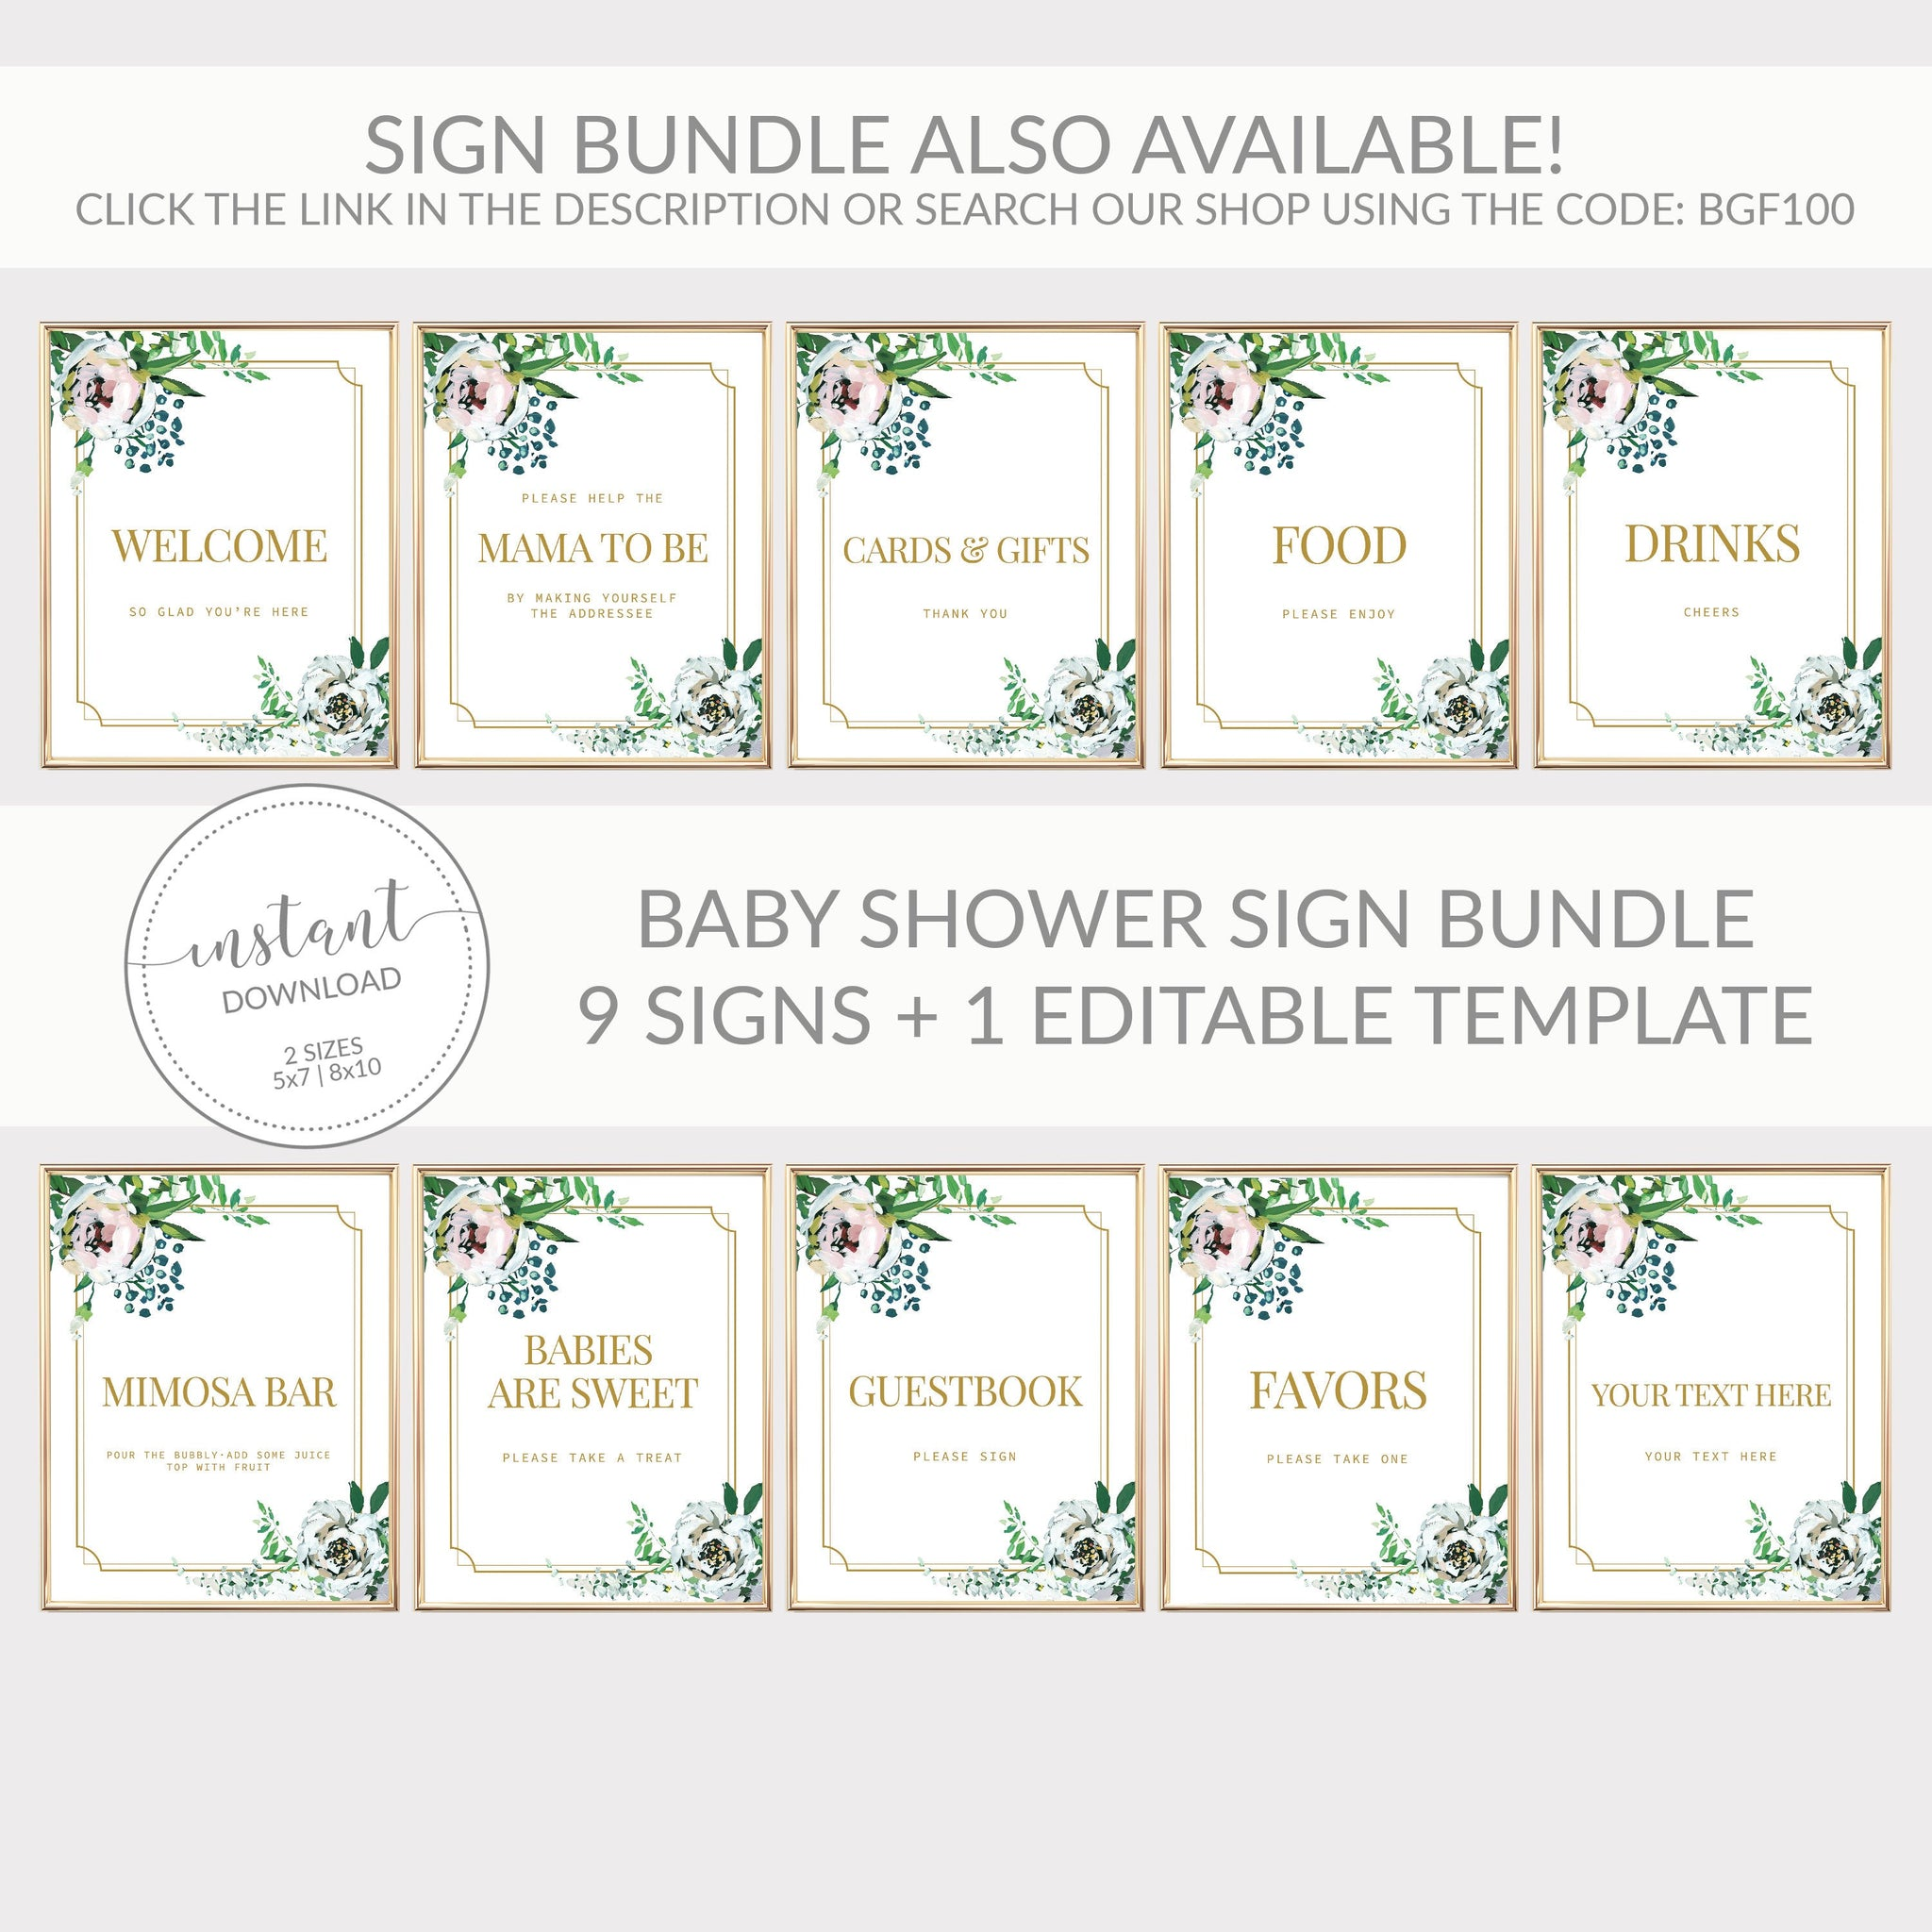 Blush Floral Greenery Baby Shower Help the Mom to Be and Be the Addressee Sign Printable INSTANT DOWNLOAD, Baby Shower Addressee - BGF100 - @PlumPolkaDot